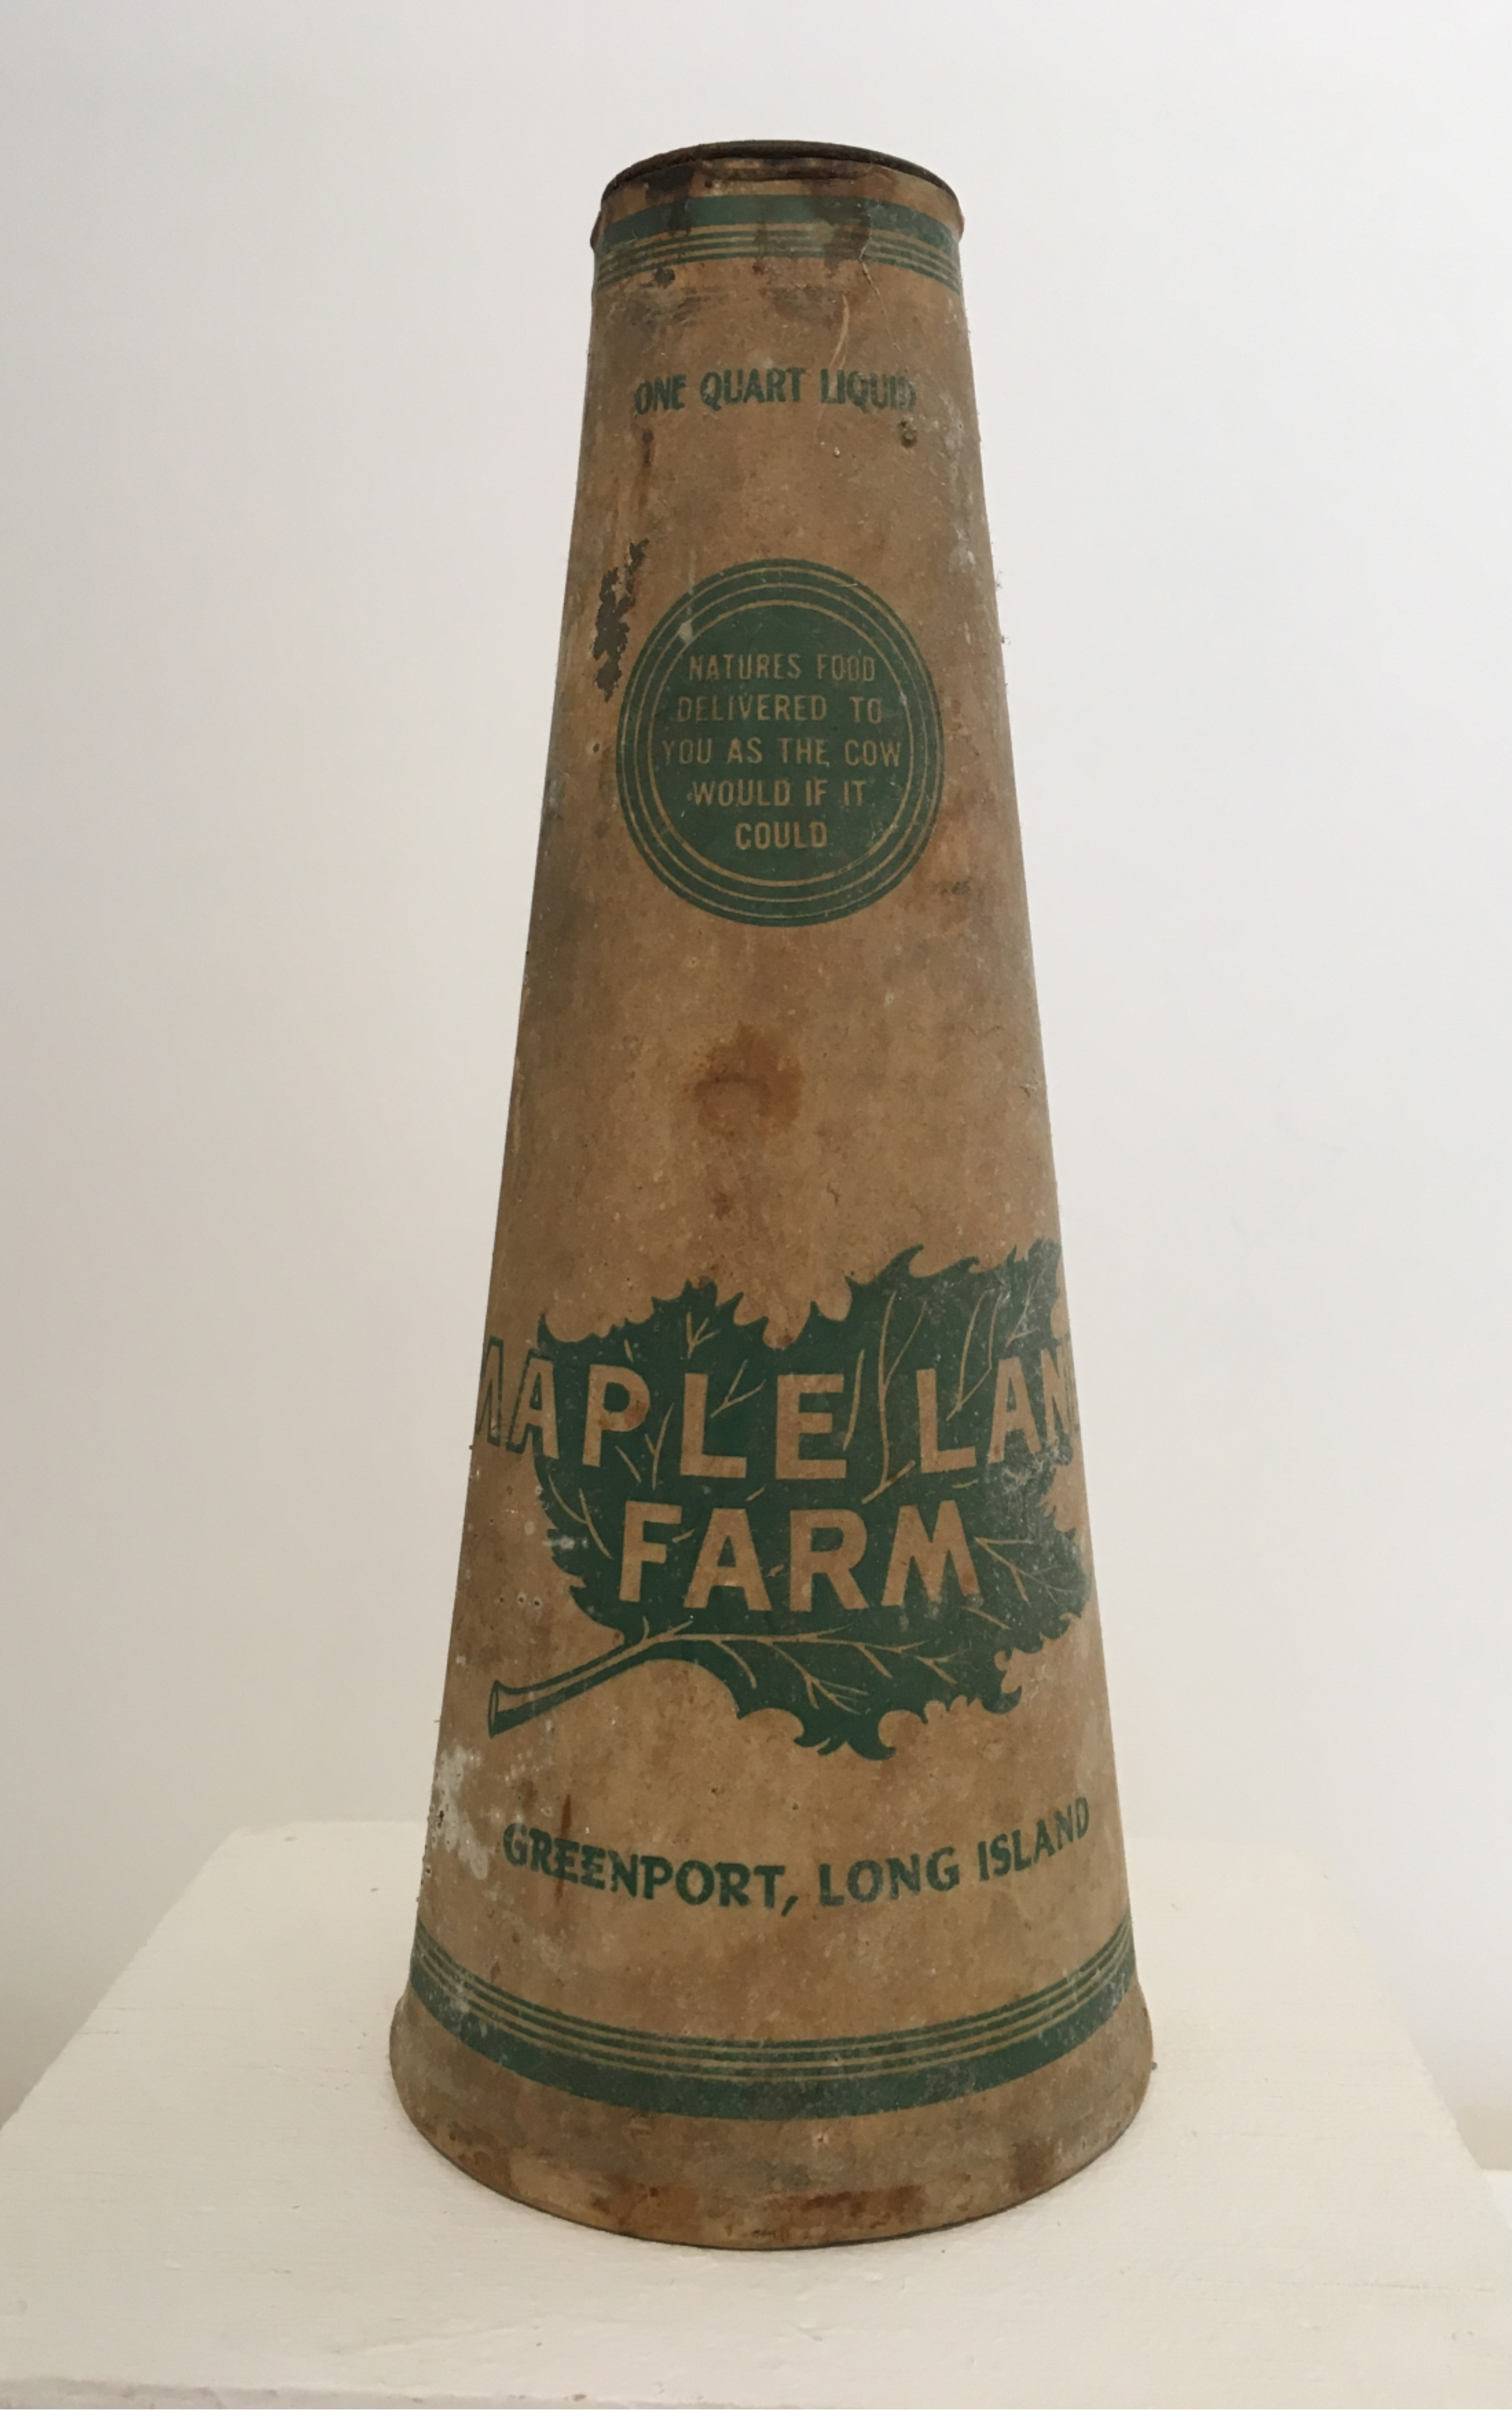 <h3>MAPLE LANE FARM MILK CARTON</h3>